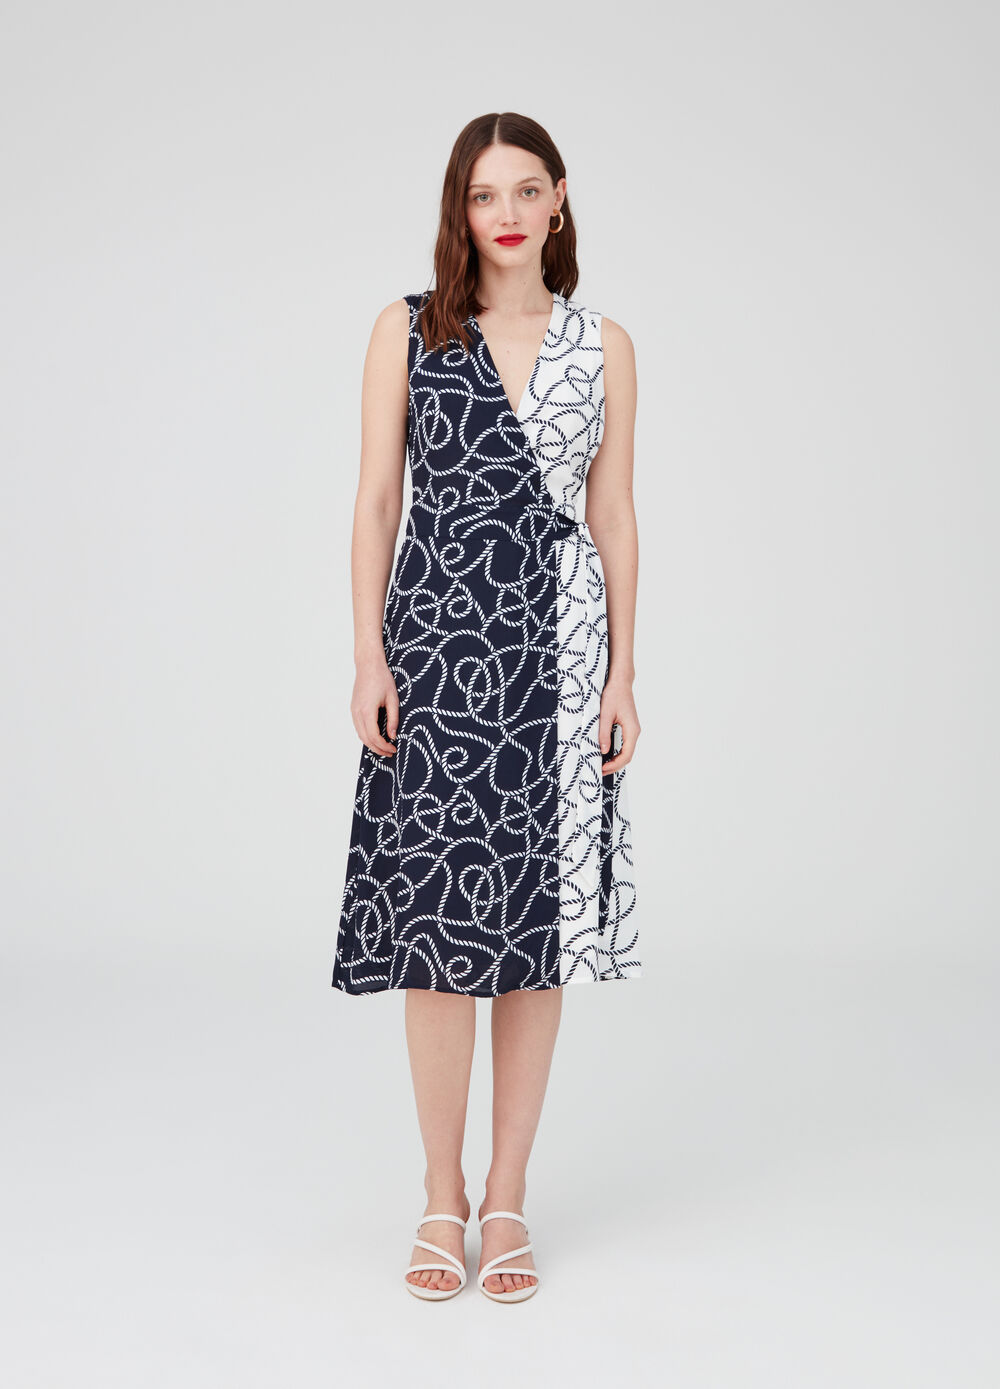 Sleeveless dress with V neck and patterned strap